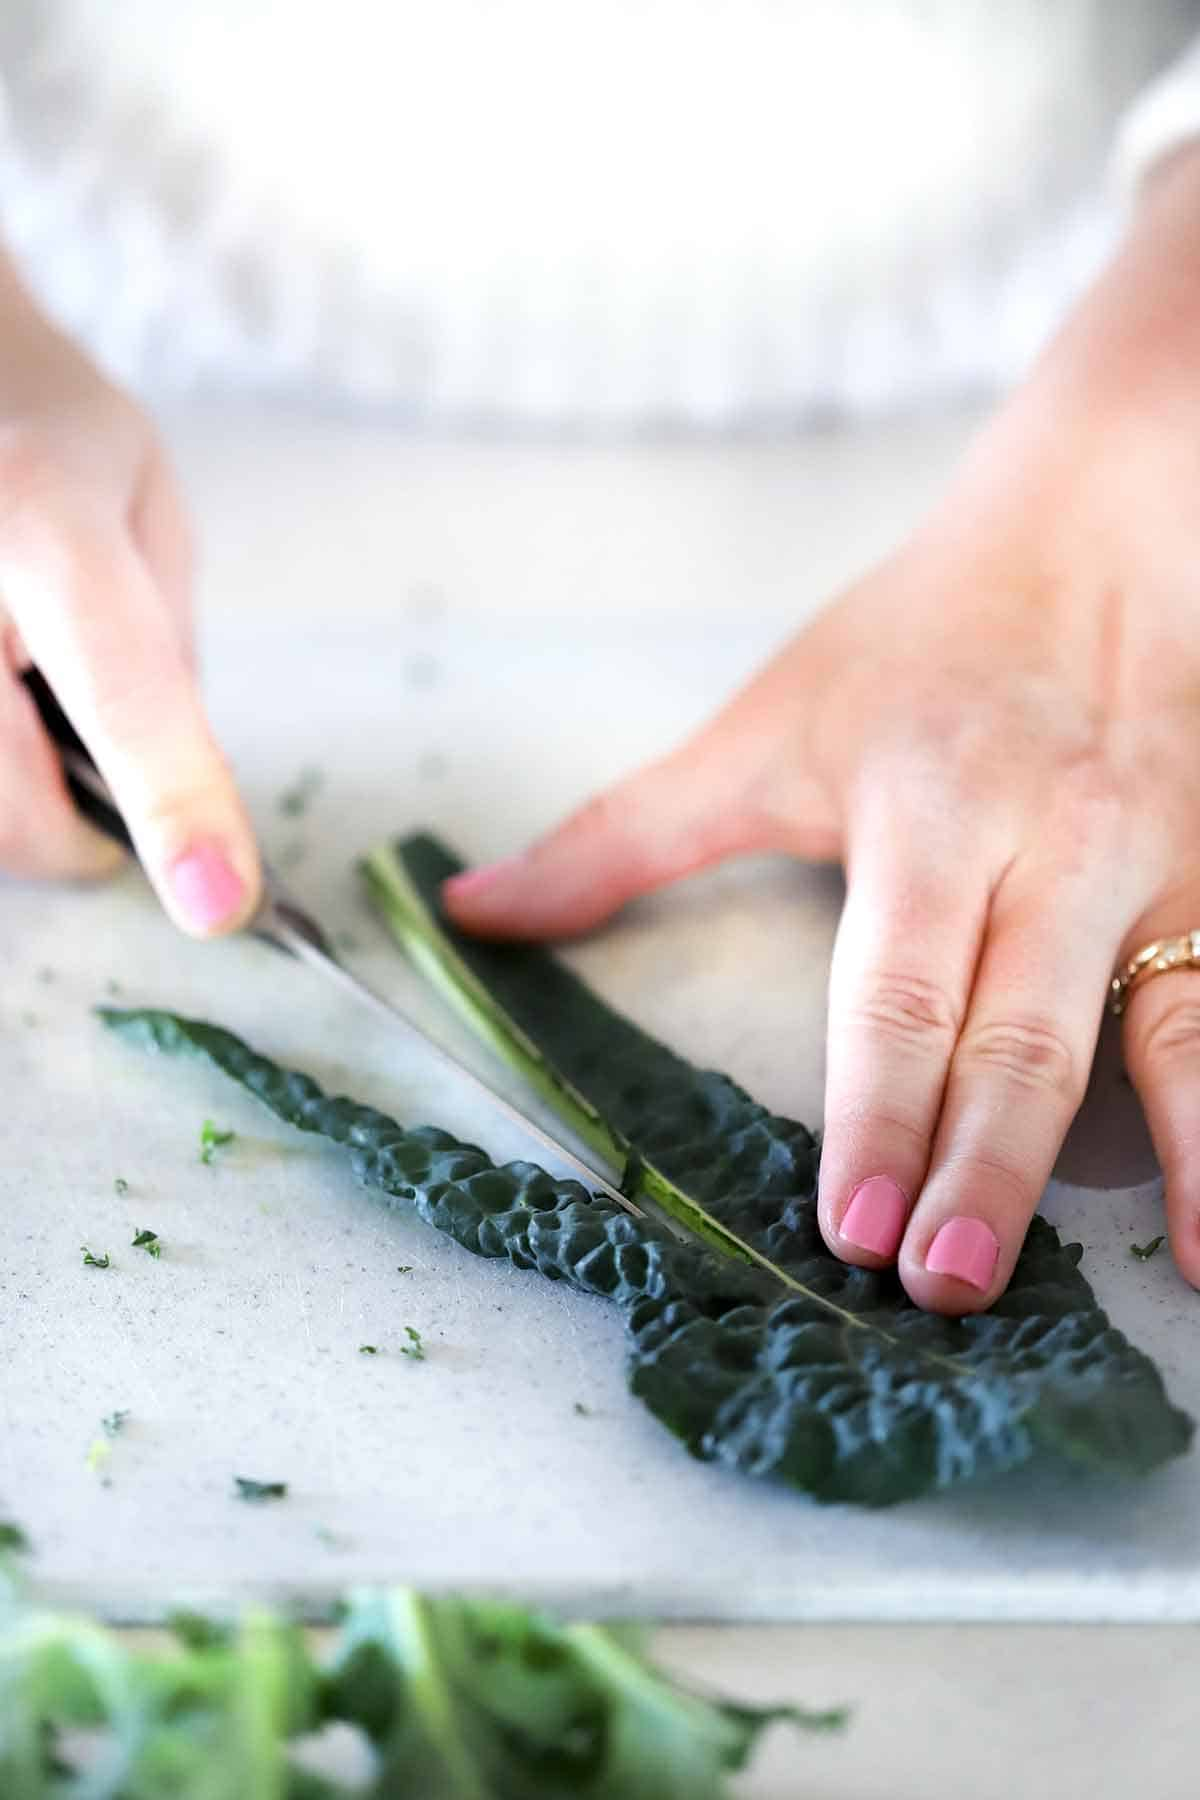 How to remove the stem from Tuscan kale.